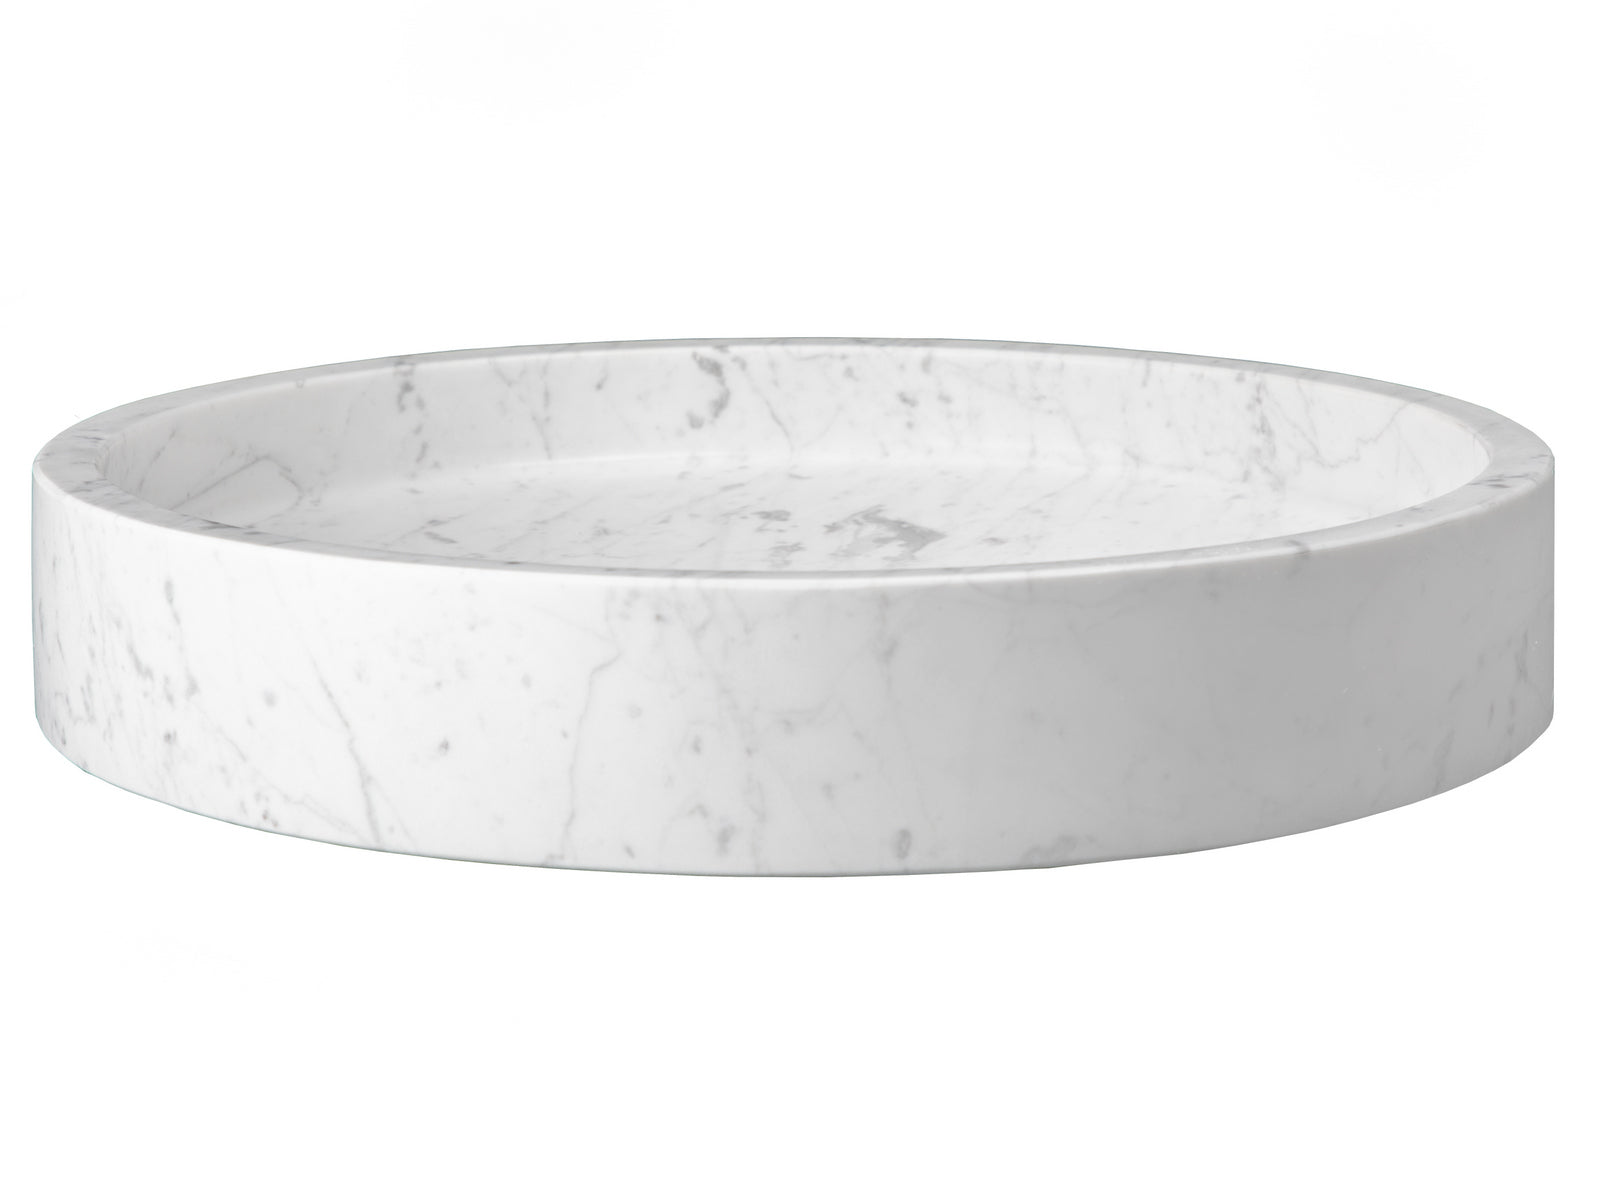 Low Round Vessel Sink   White Carrara Marble